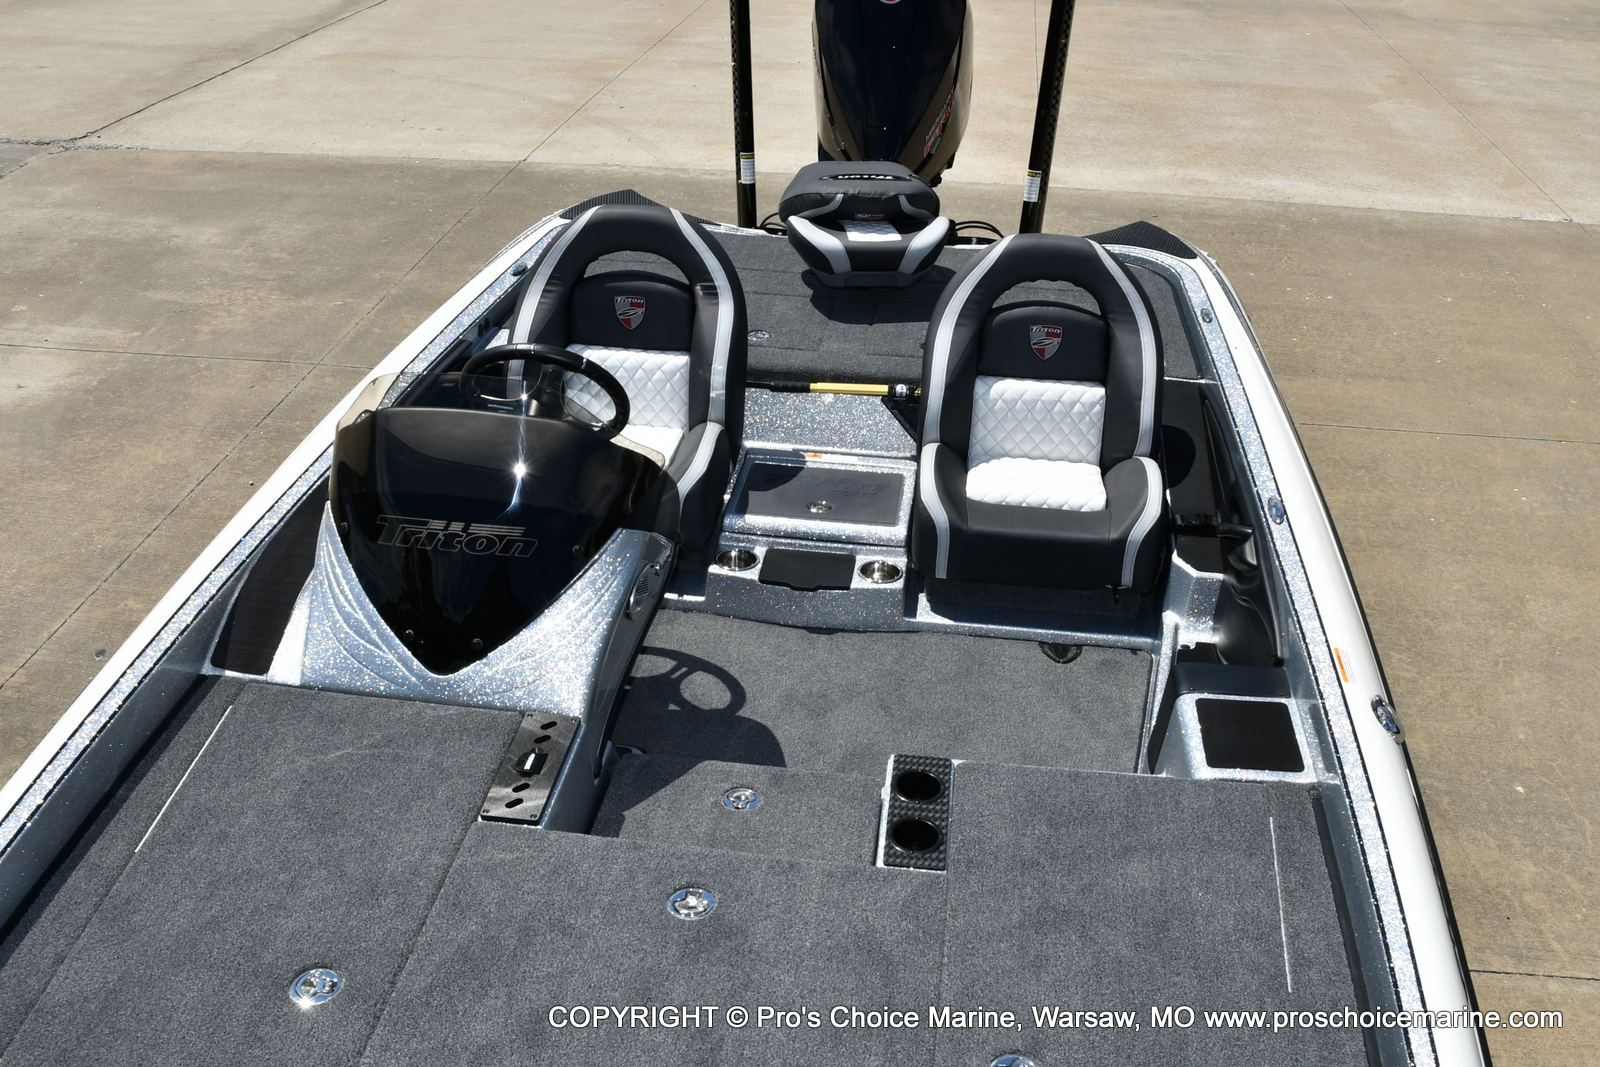 2021 Triton boat for sale, model of the boat is 21 TRX Patriot & Image # 21 of 50